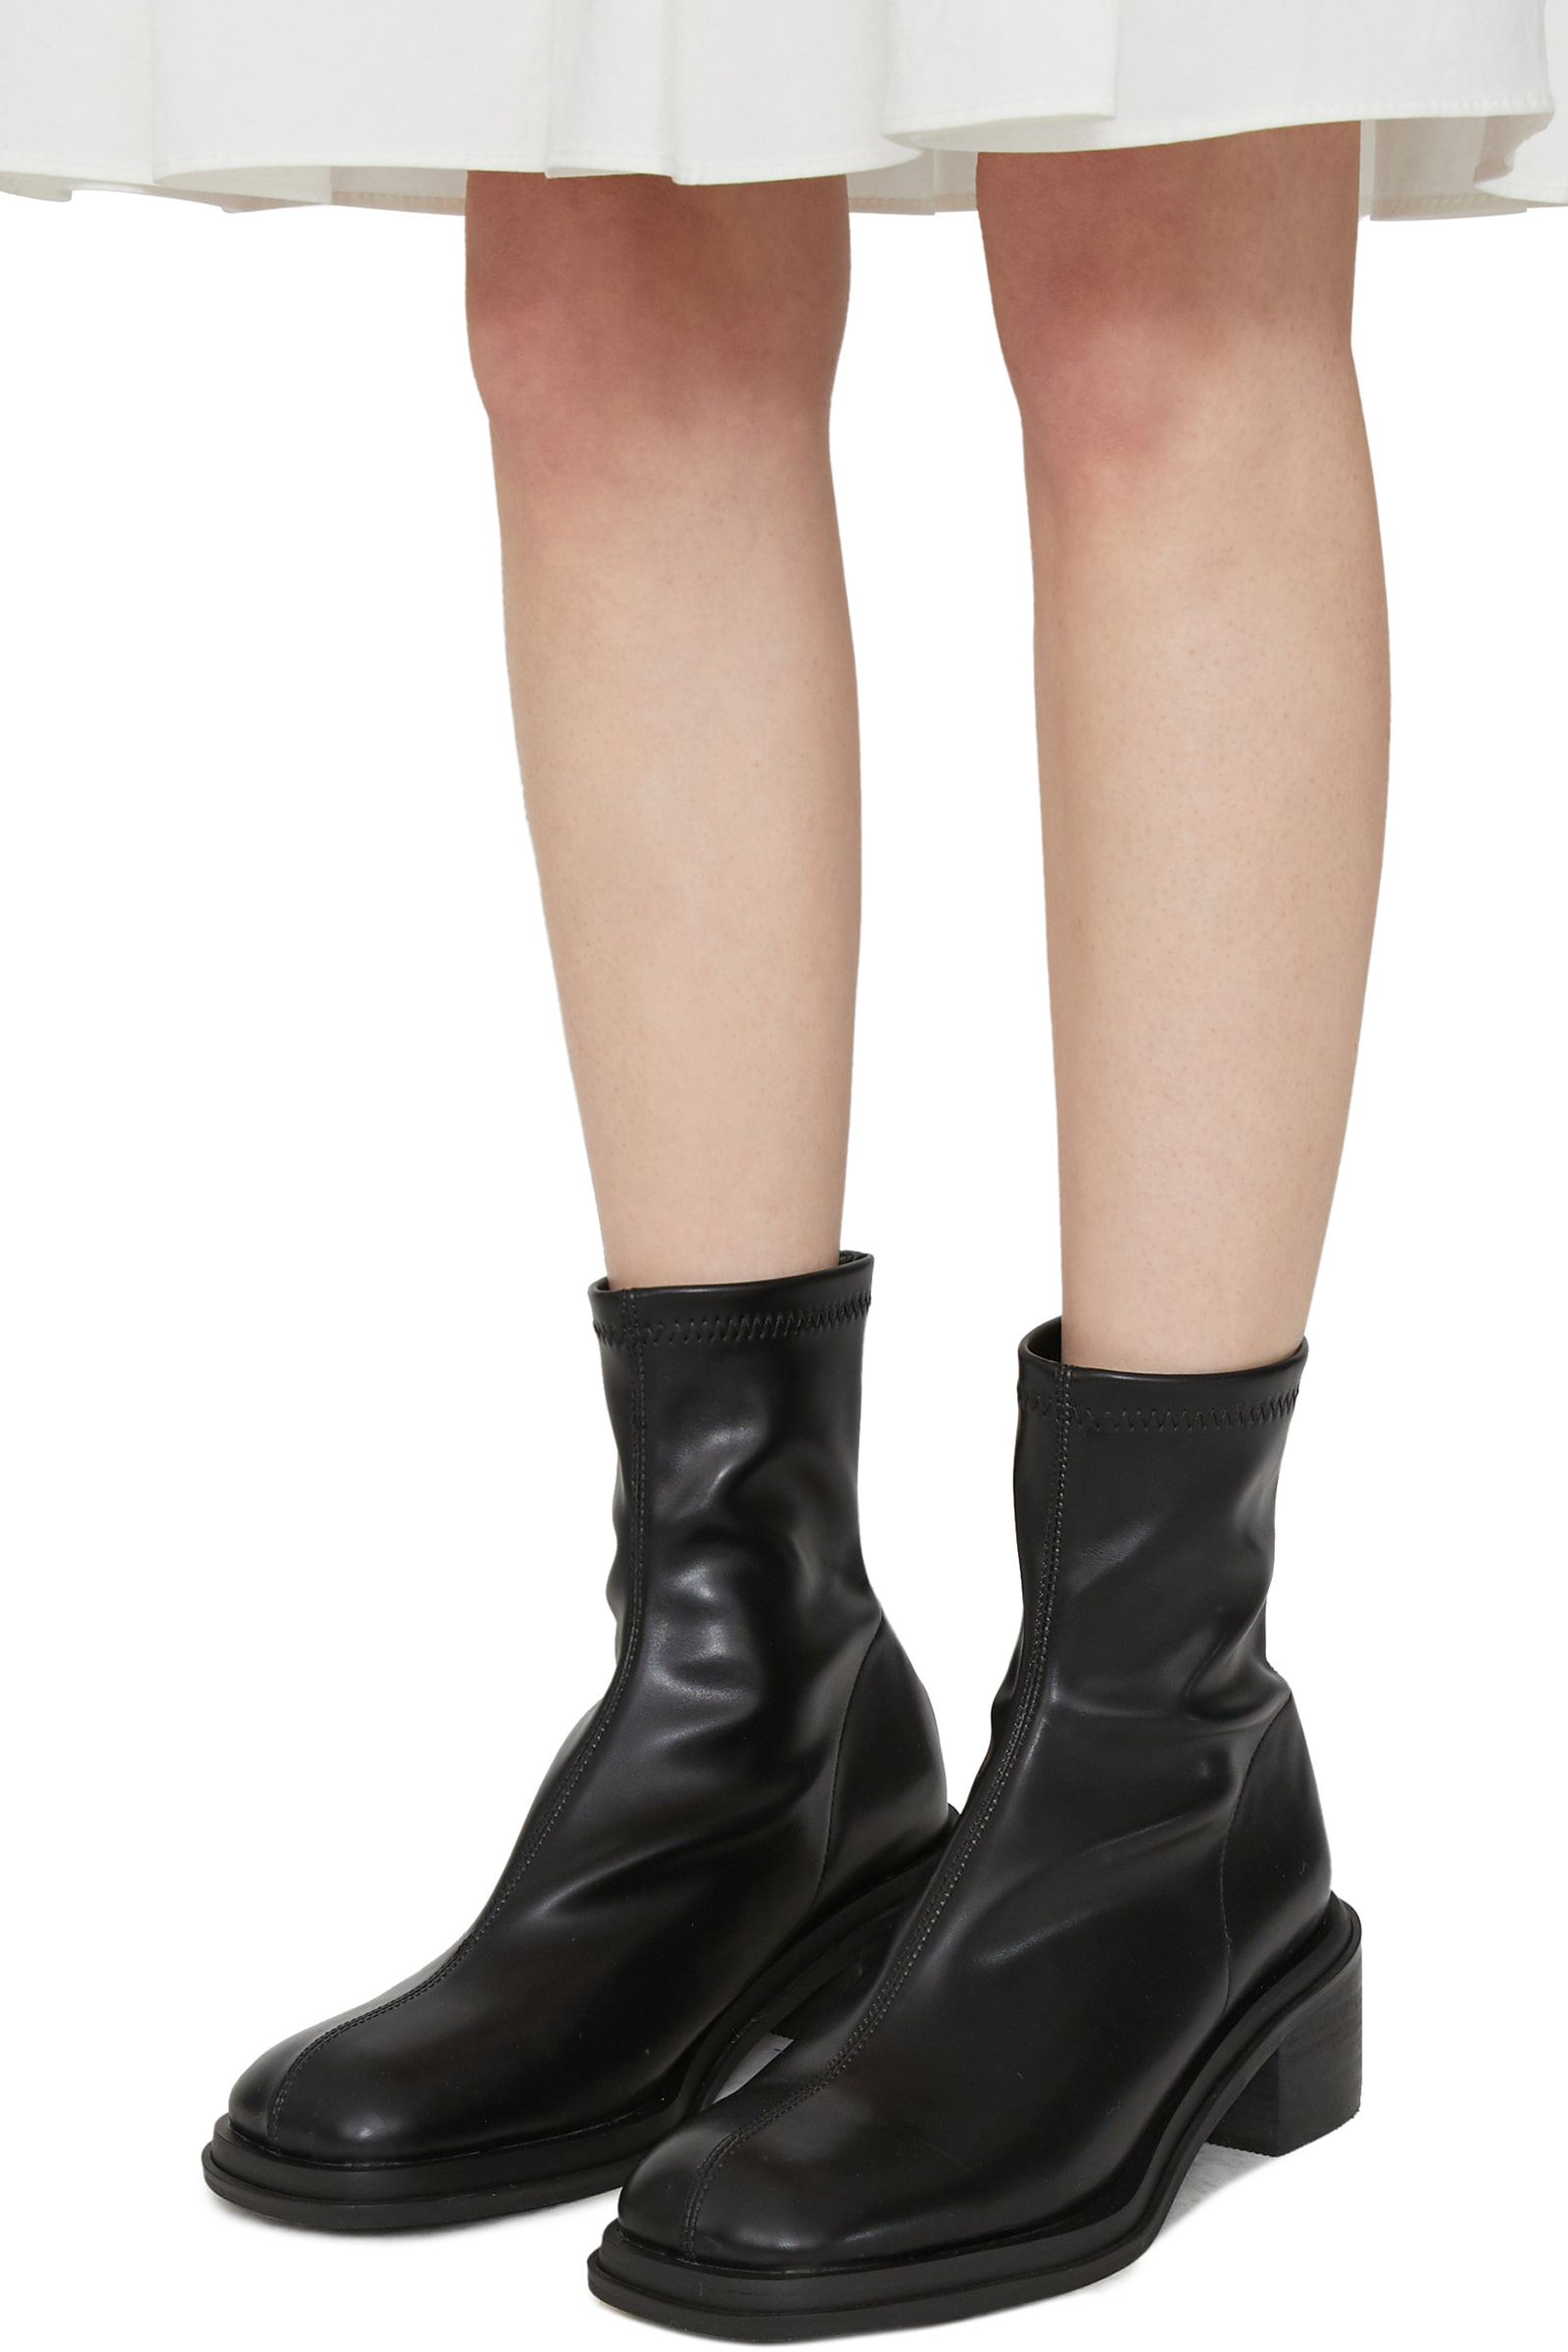 Center Fleece-lined middle heel ankle boots